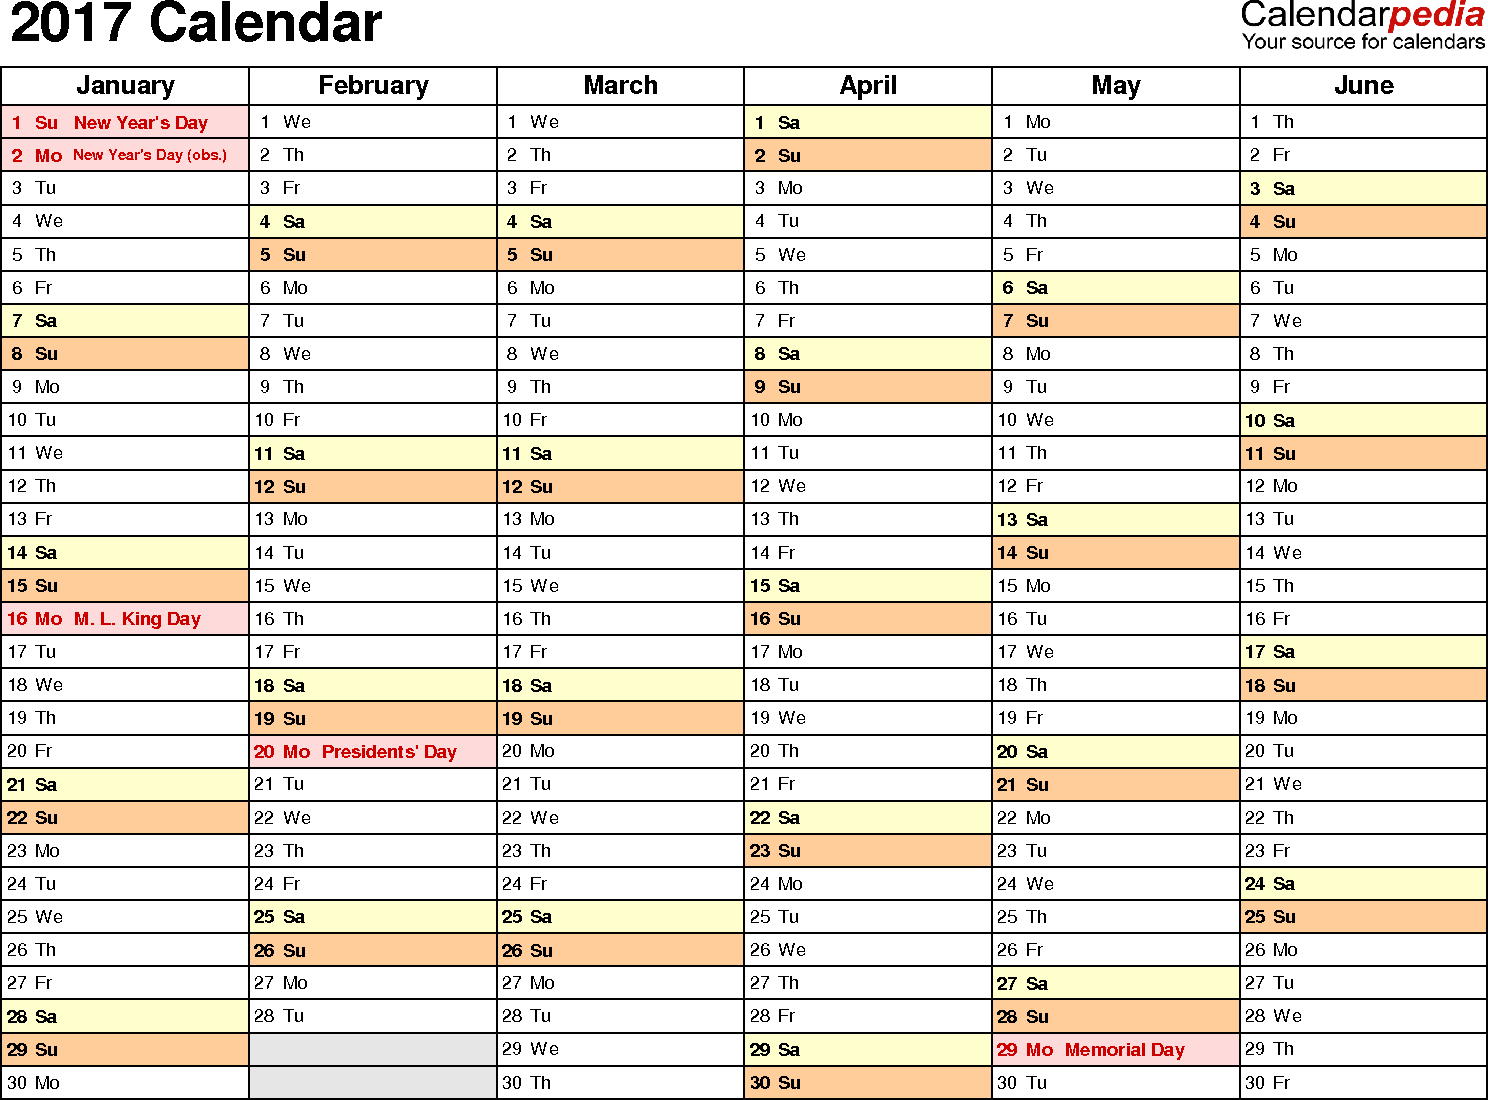 Ediblewildsus  Gorgeous  Calendar  Download  Free Printable Excel Templates Xls With Exciting Template   Calendar For Excel Months Horizontally  Pages Landscape Orientation With Appealing Word And Excel Not Responding Also Update Sql Server Table From Excel In Addition Middle Excel And Excel One Variable Data Table As Well As Excel Sequential Numbers Additionally Sample Excel Sales Data From Calendarpediacom With Ediblewildsus  Exciting  Calendar  Download  Free Printable Excel Templates Xls With Appealing Template   Calendar For Excel Months Horizontally  Pages Landscape Orientation And Gorgeous Word And Excel Not Responding Also Update Sql Server Table From Excel In Addition Middle Excel From Calendarpediacom